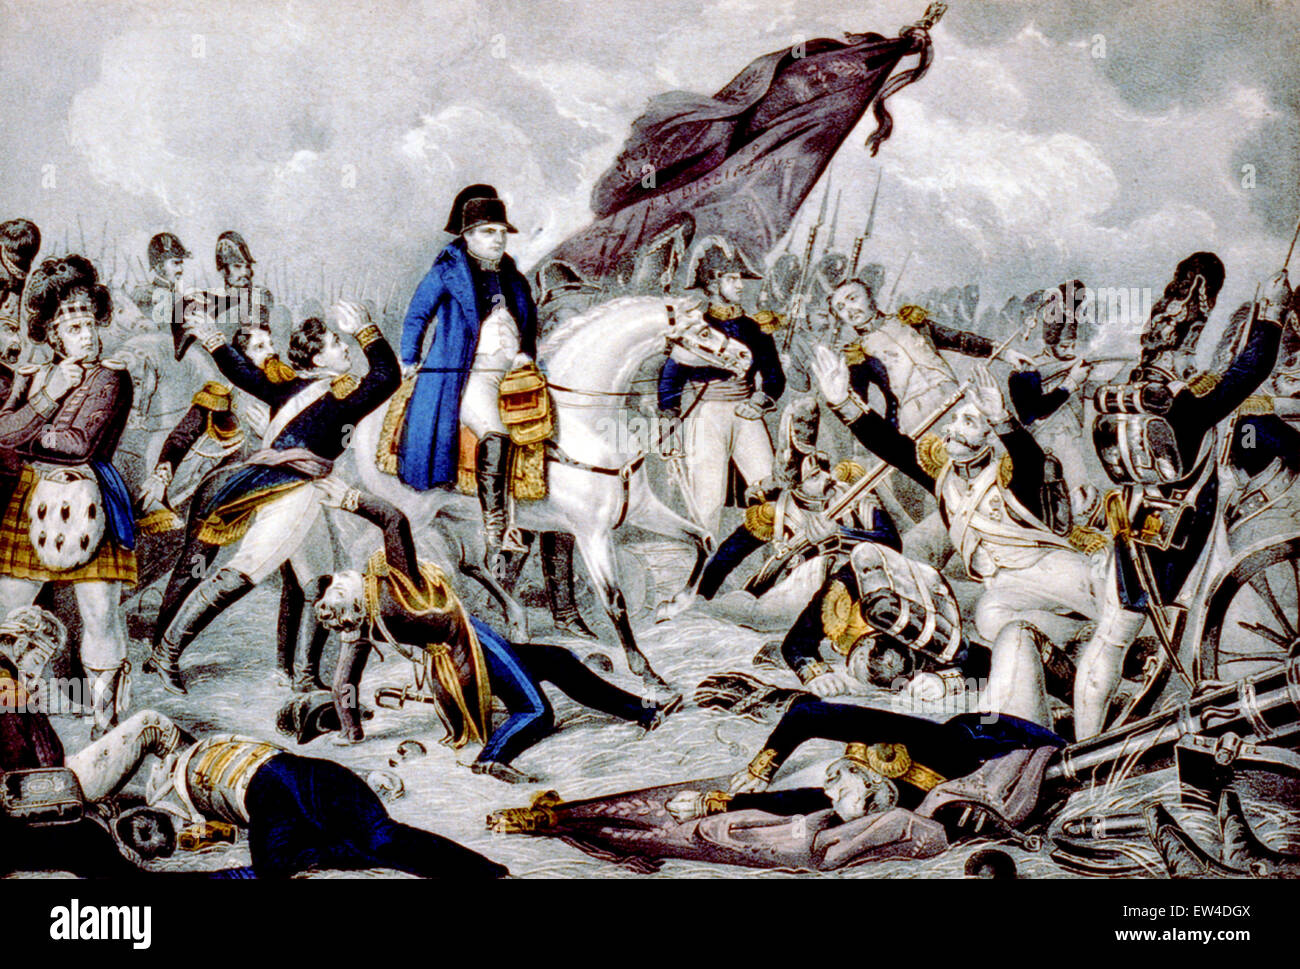 Battle of Waterloo - Stock Image